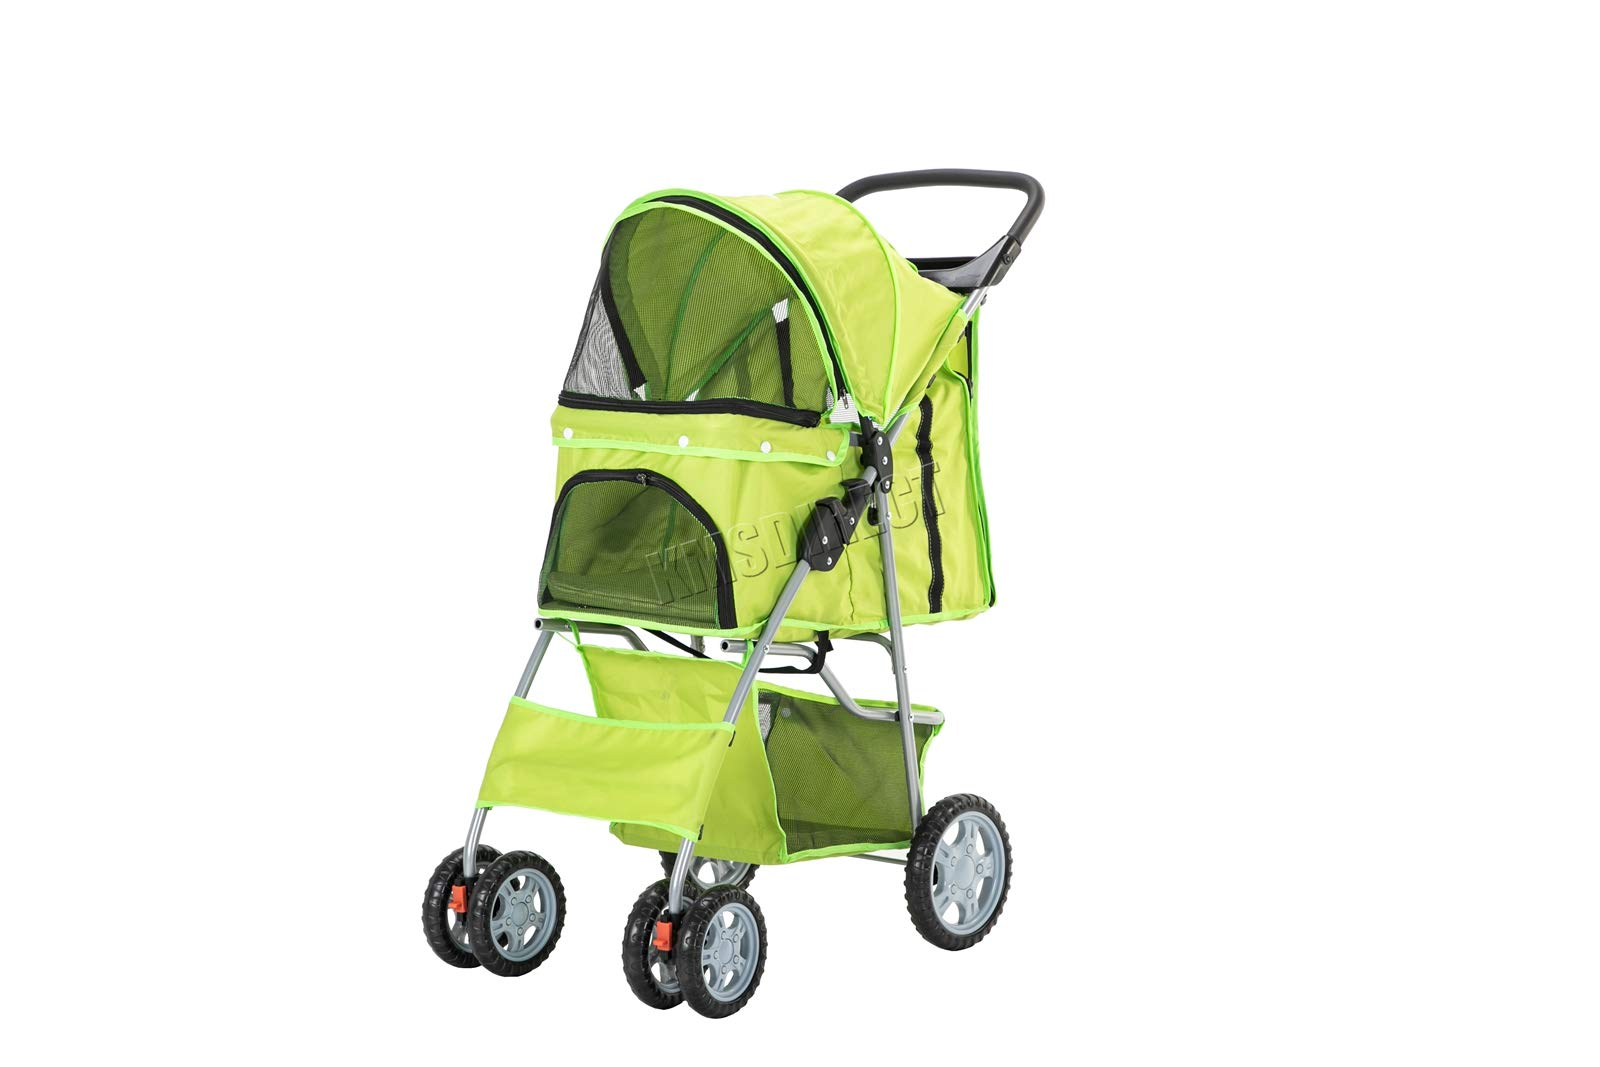 KMS FoxHunter New Dog Pram | Pet Dog Cat Animal Stroller | Dog Buggy For Traveling | Travel Vet Stroller Disabled Dog Pushchair | 2 Front Swivel Wheels & Rear Brake Green | UK Seller